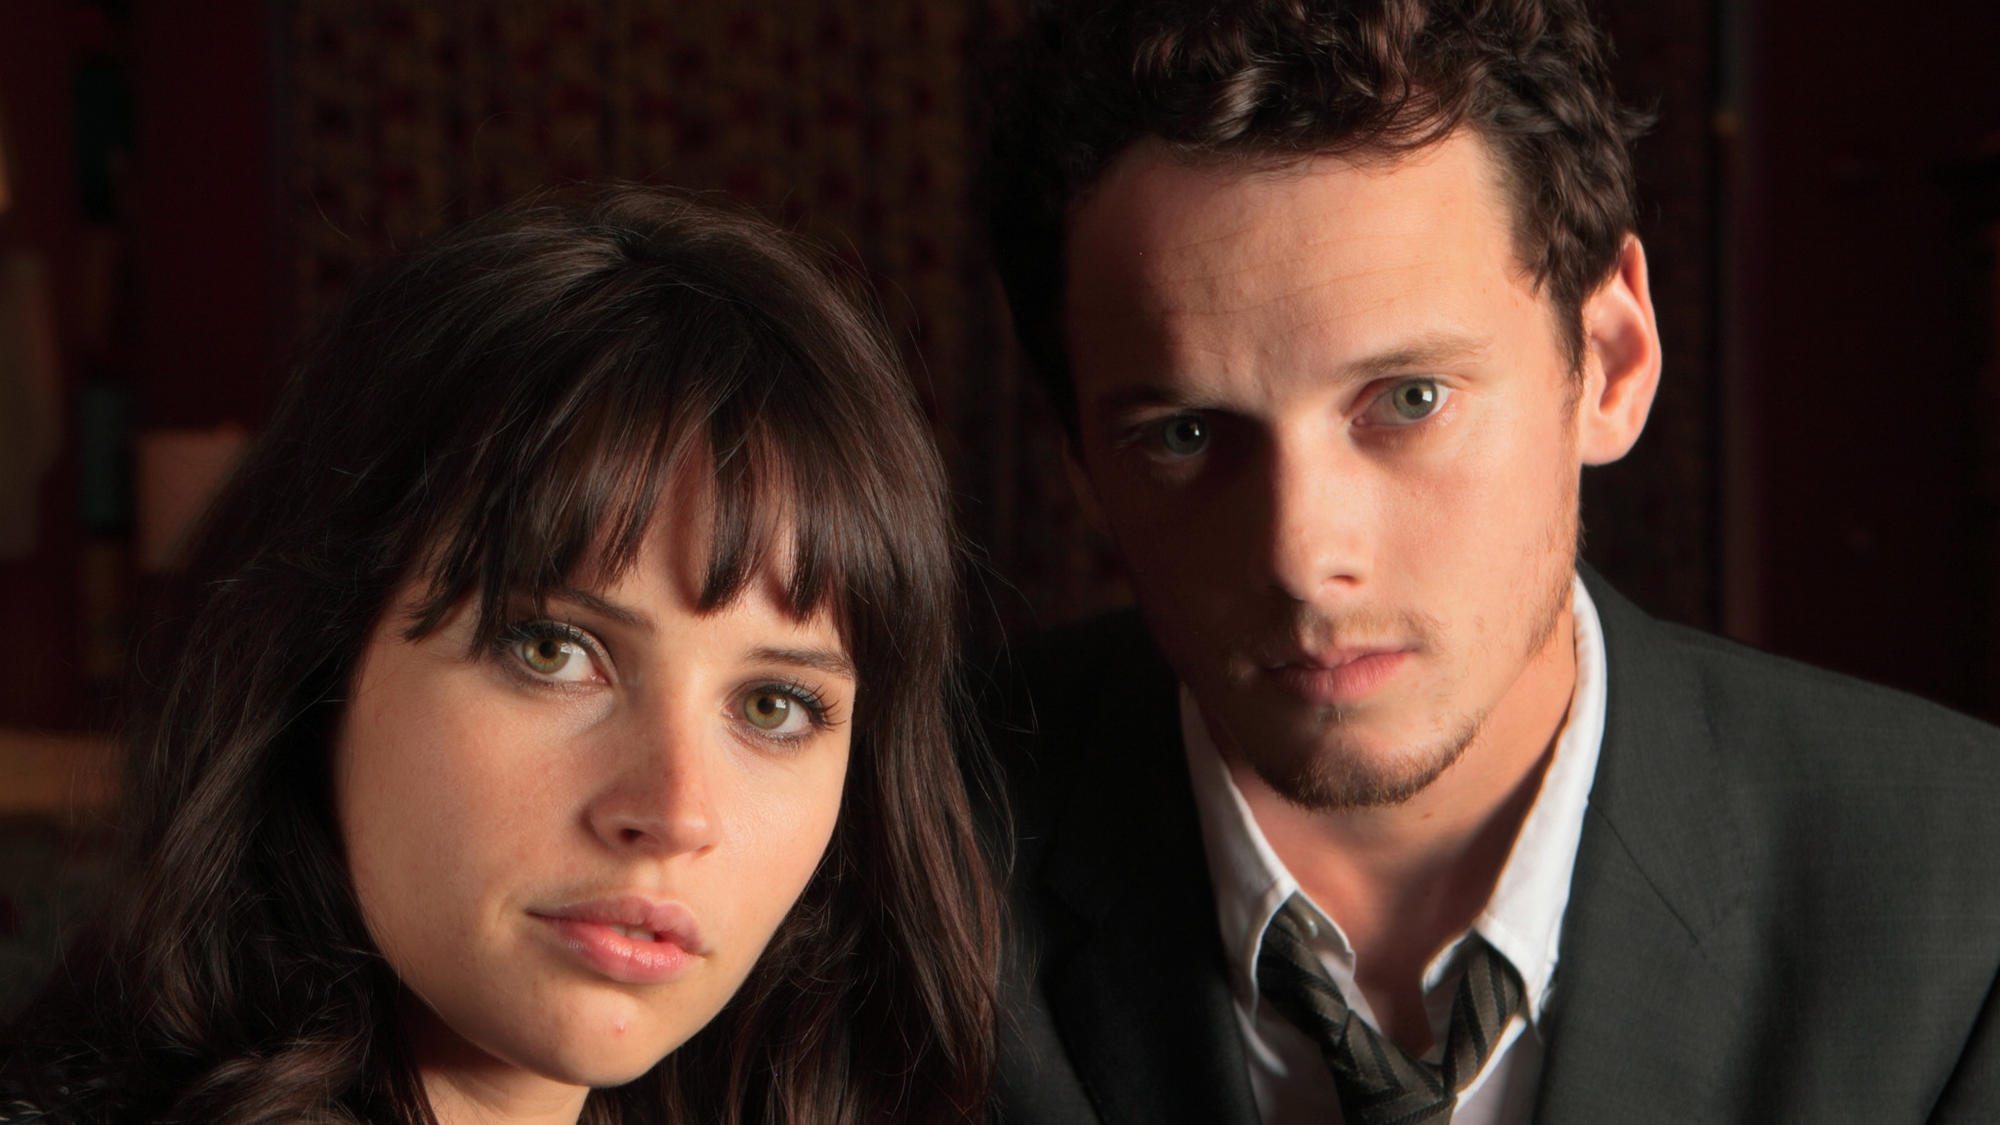 Felicity Jones and Anton Yelchin, who starred together in